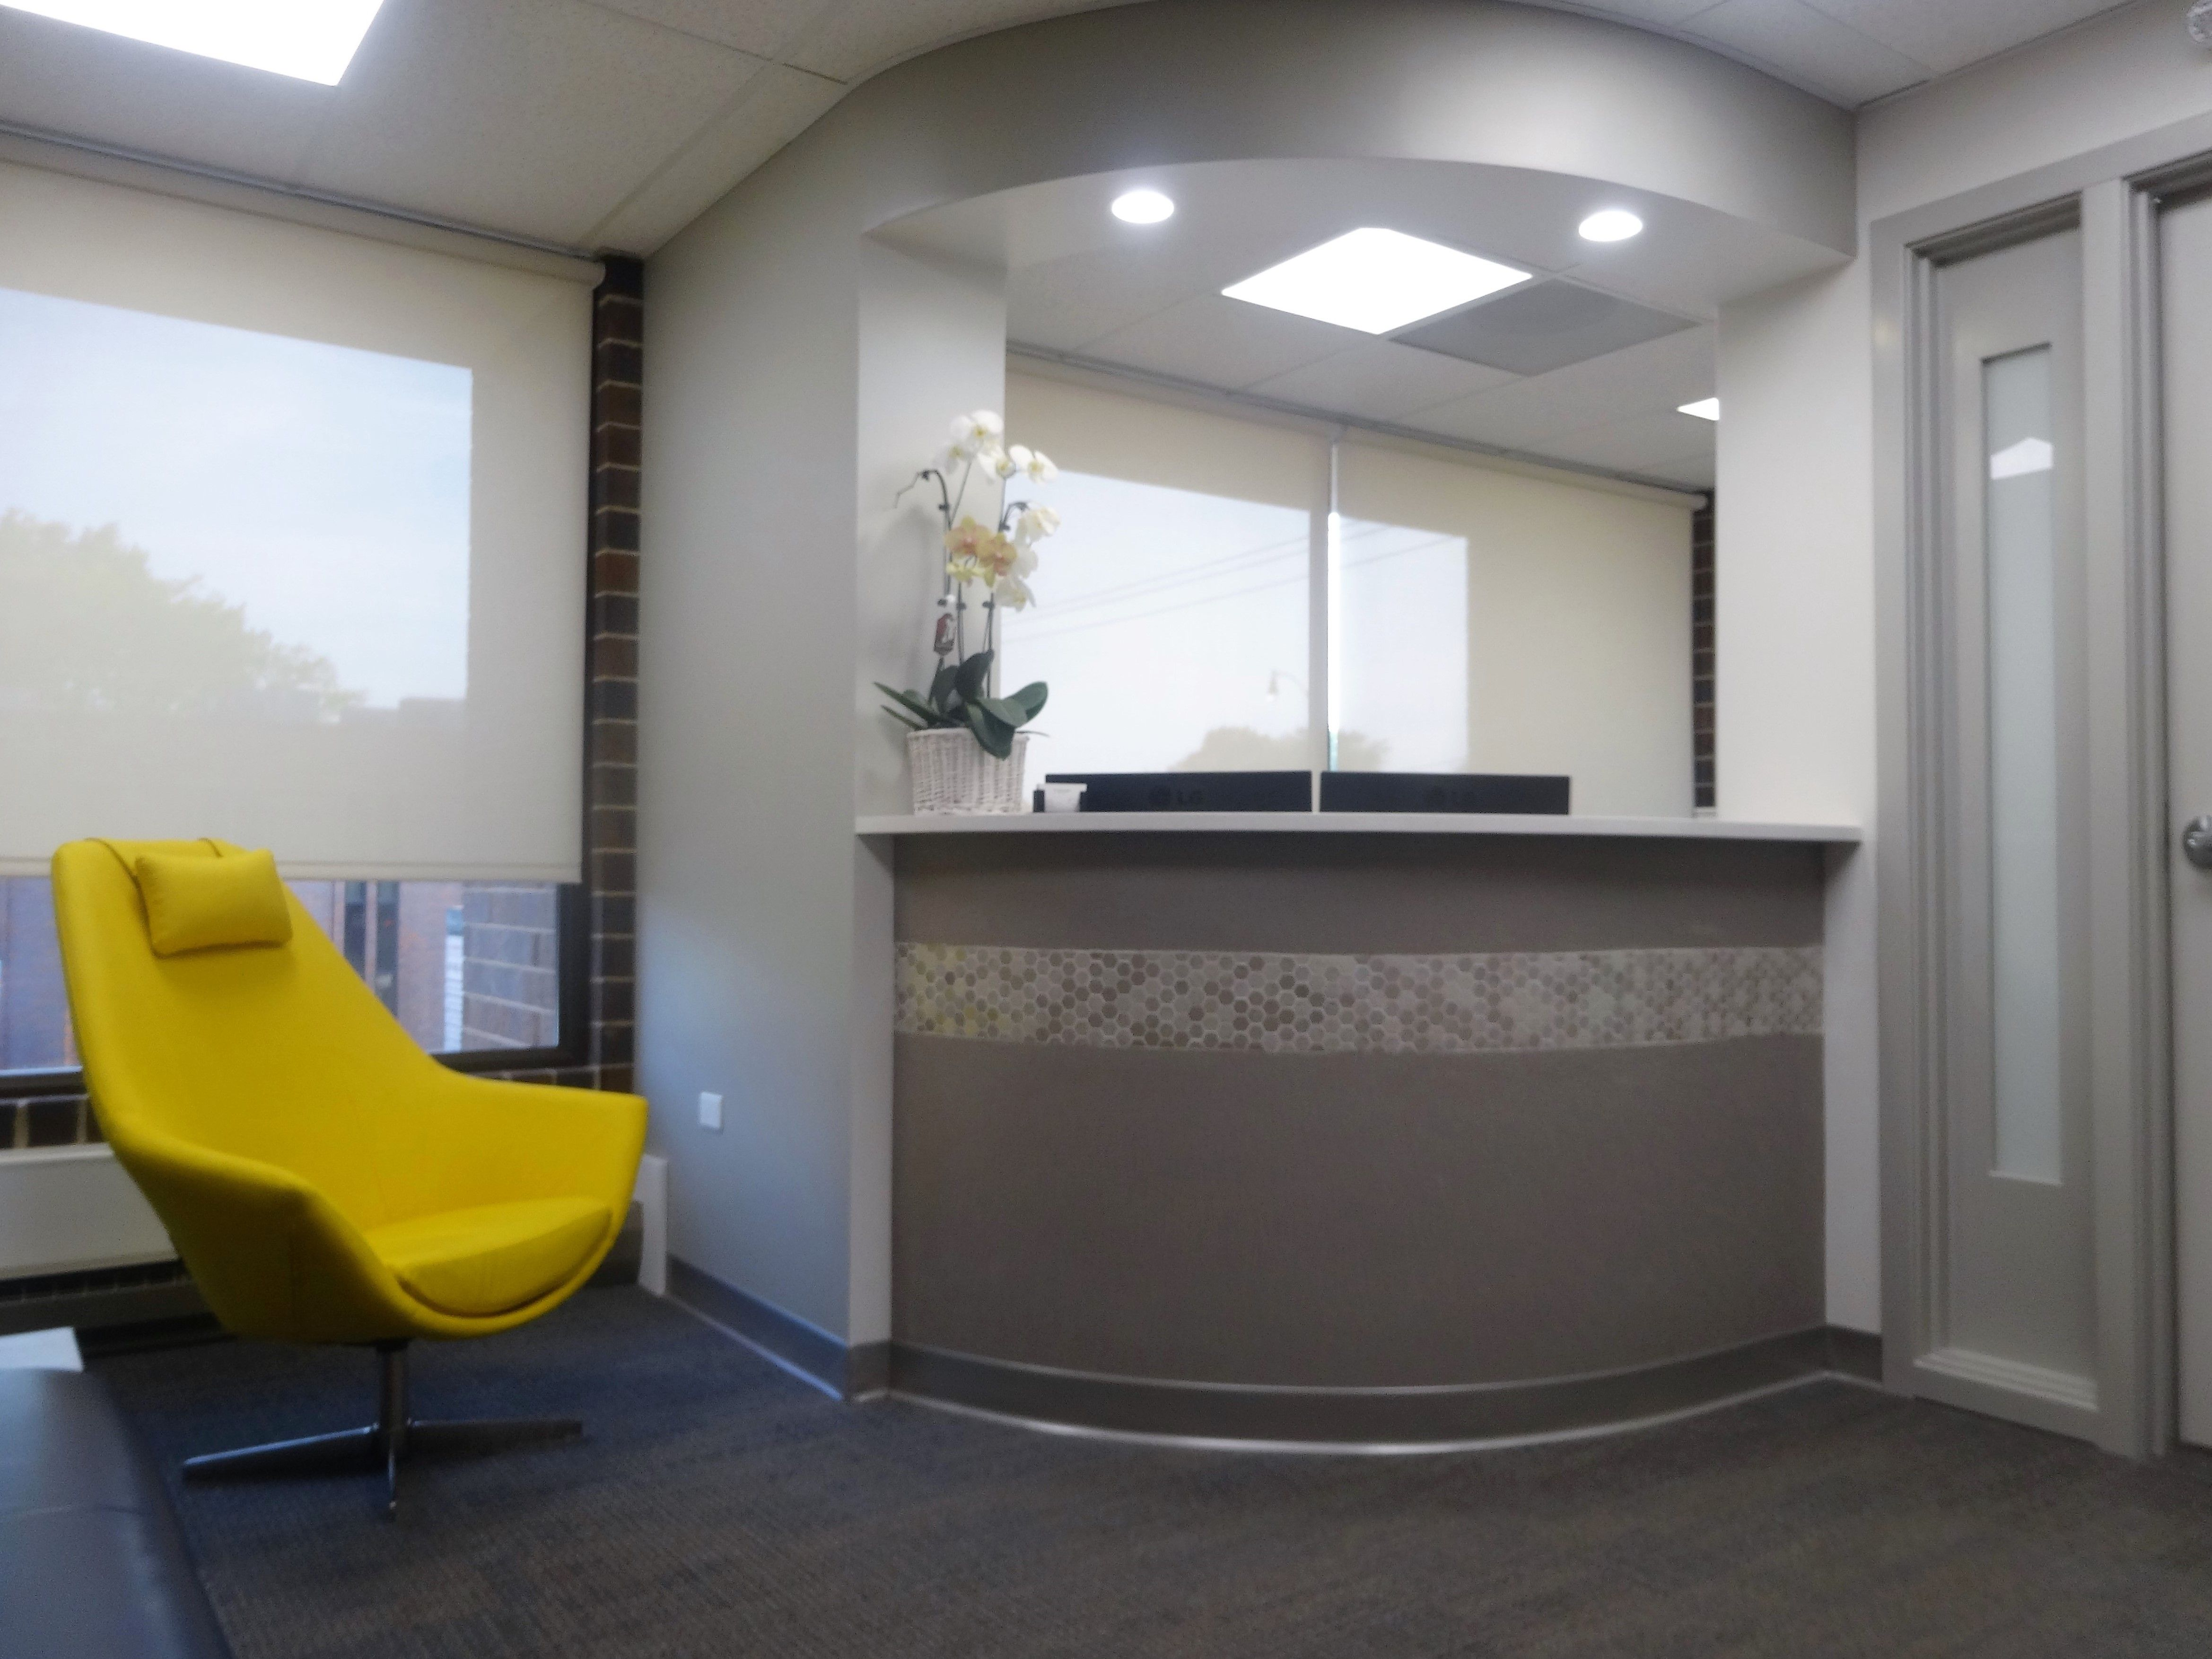 Dental studio designed by Apex Team for Kampfer Dental Studio. It includes  Design and Construction